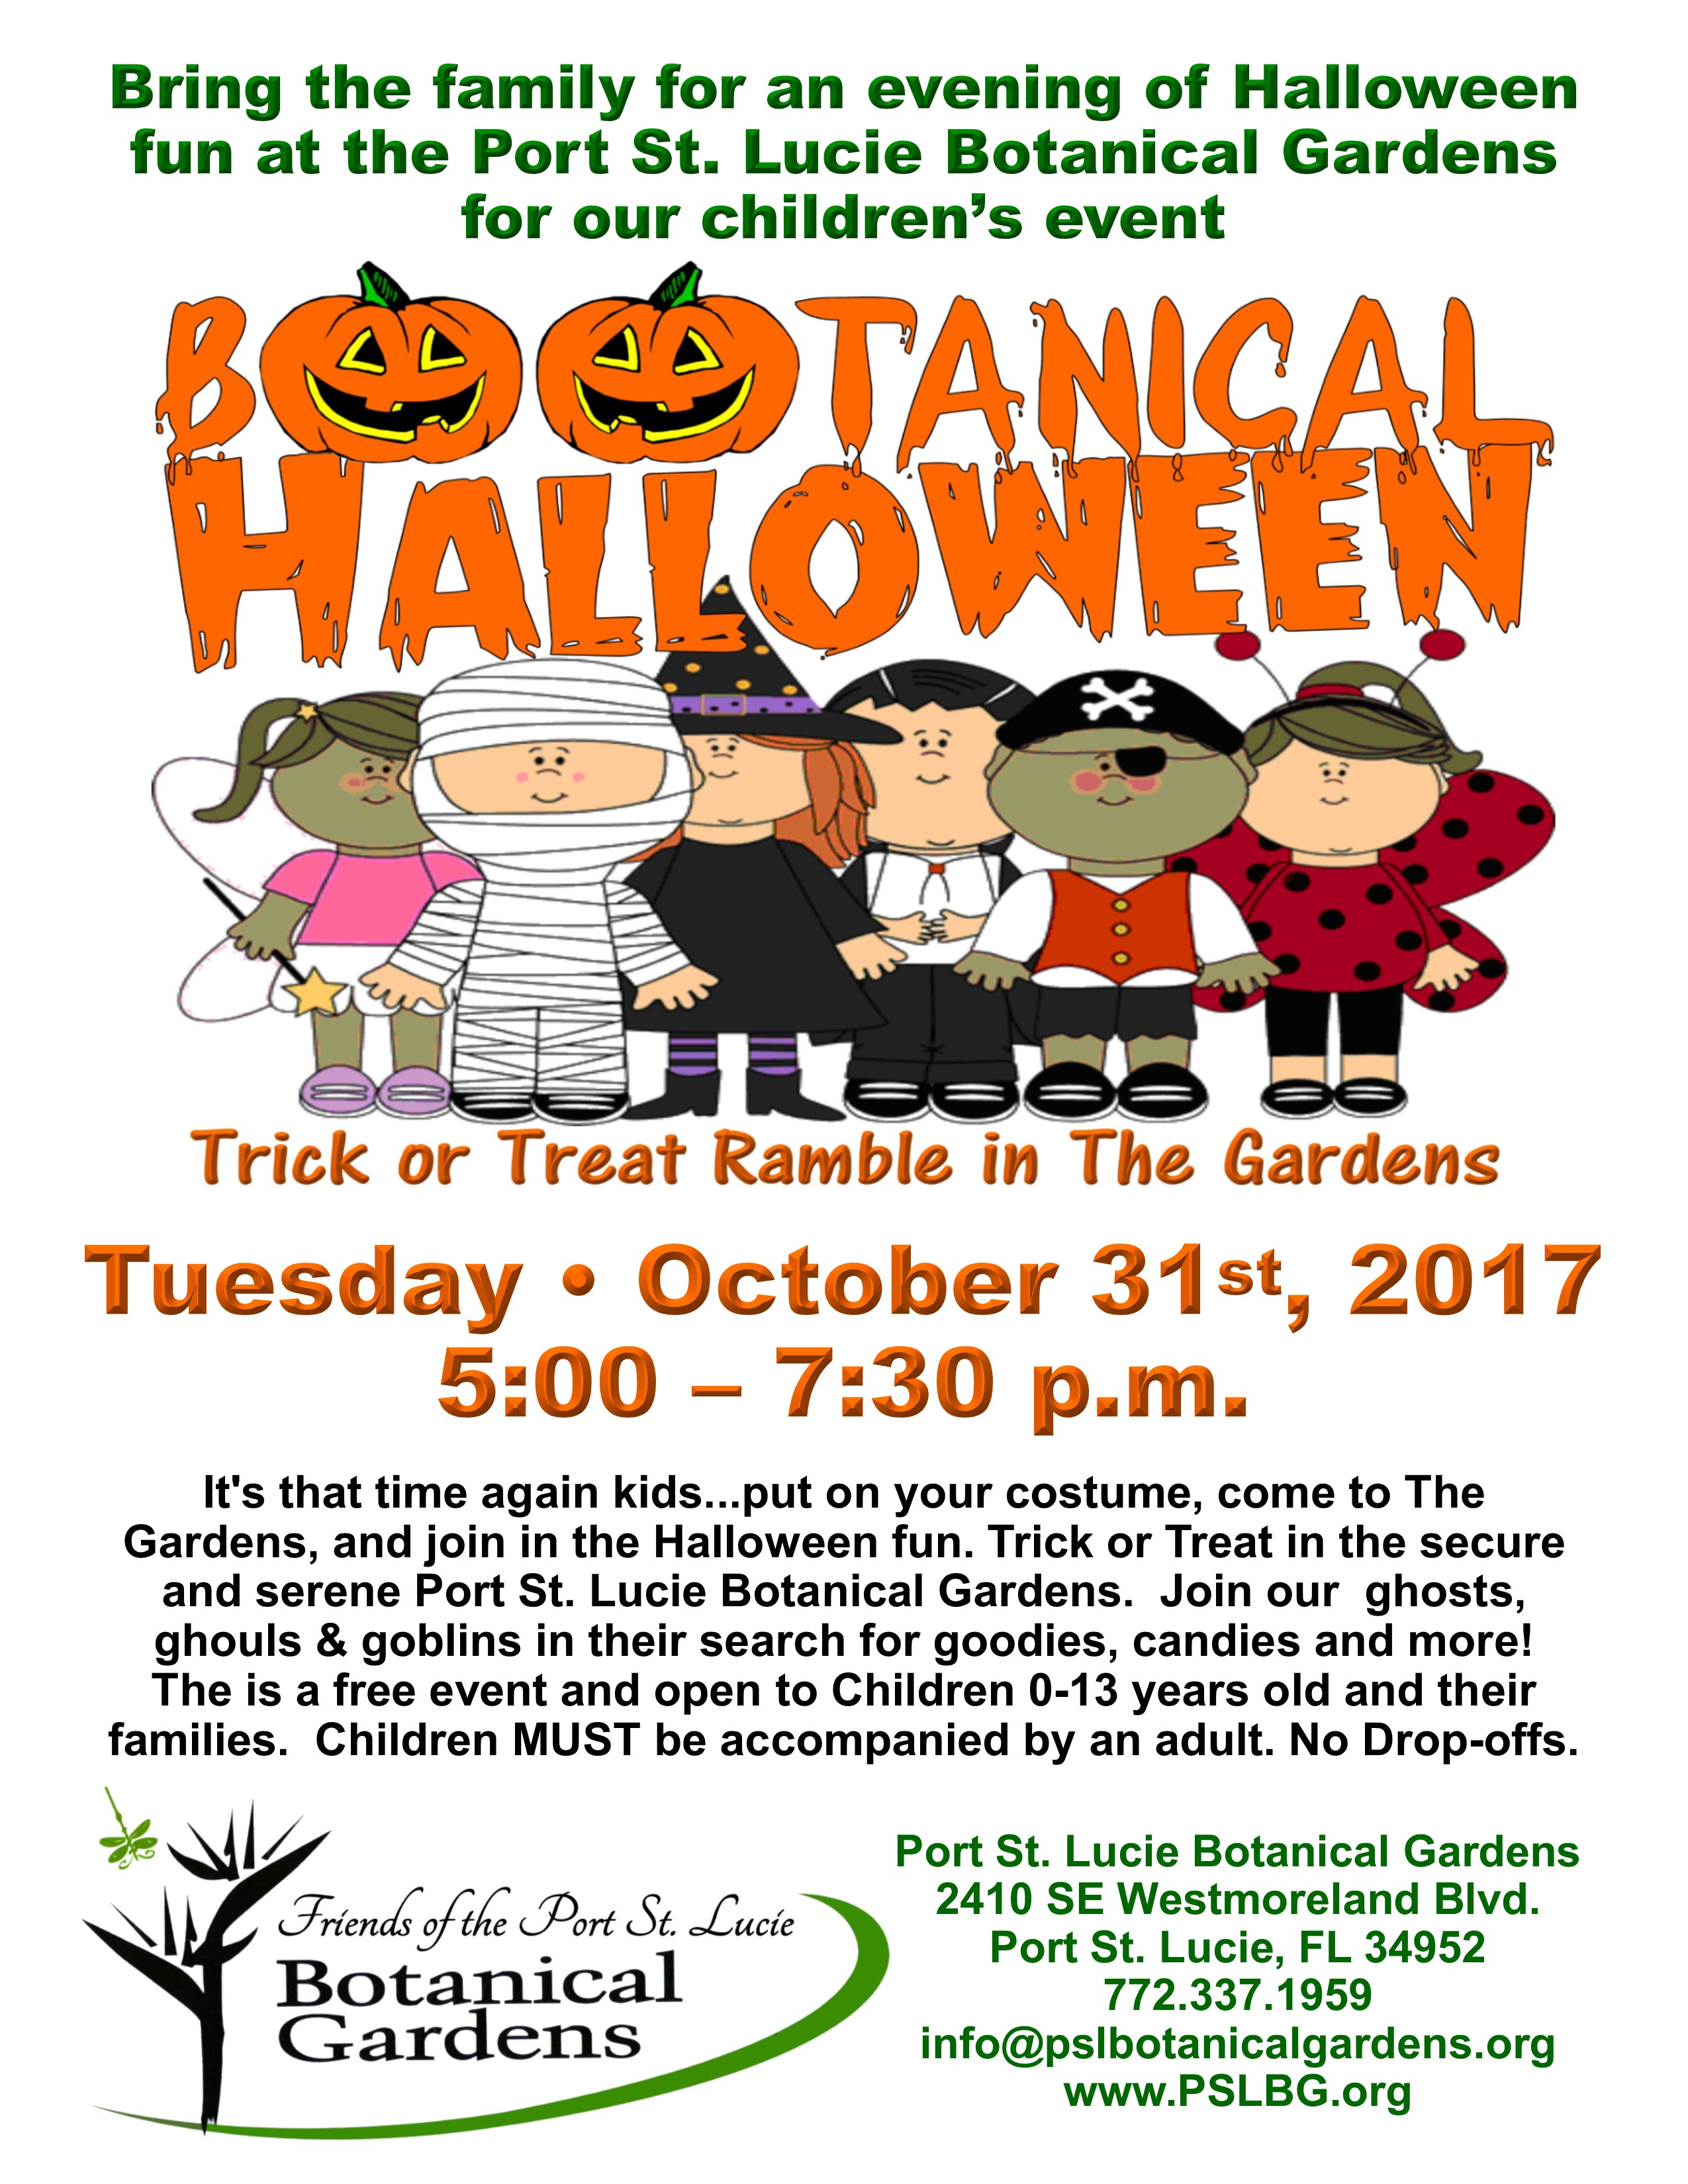 BOOtanical Halloween   Trick Or Treat Ramble In The Gardens